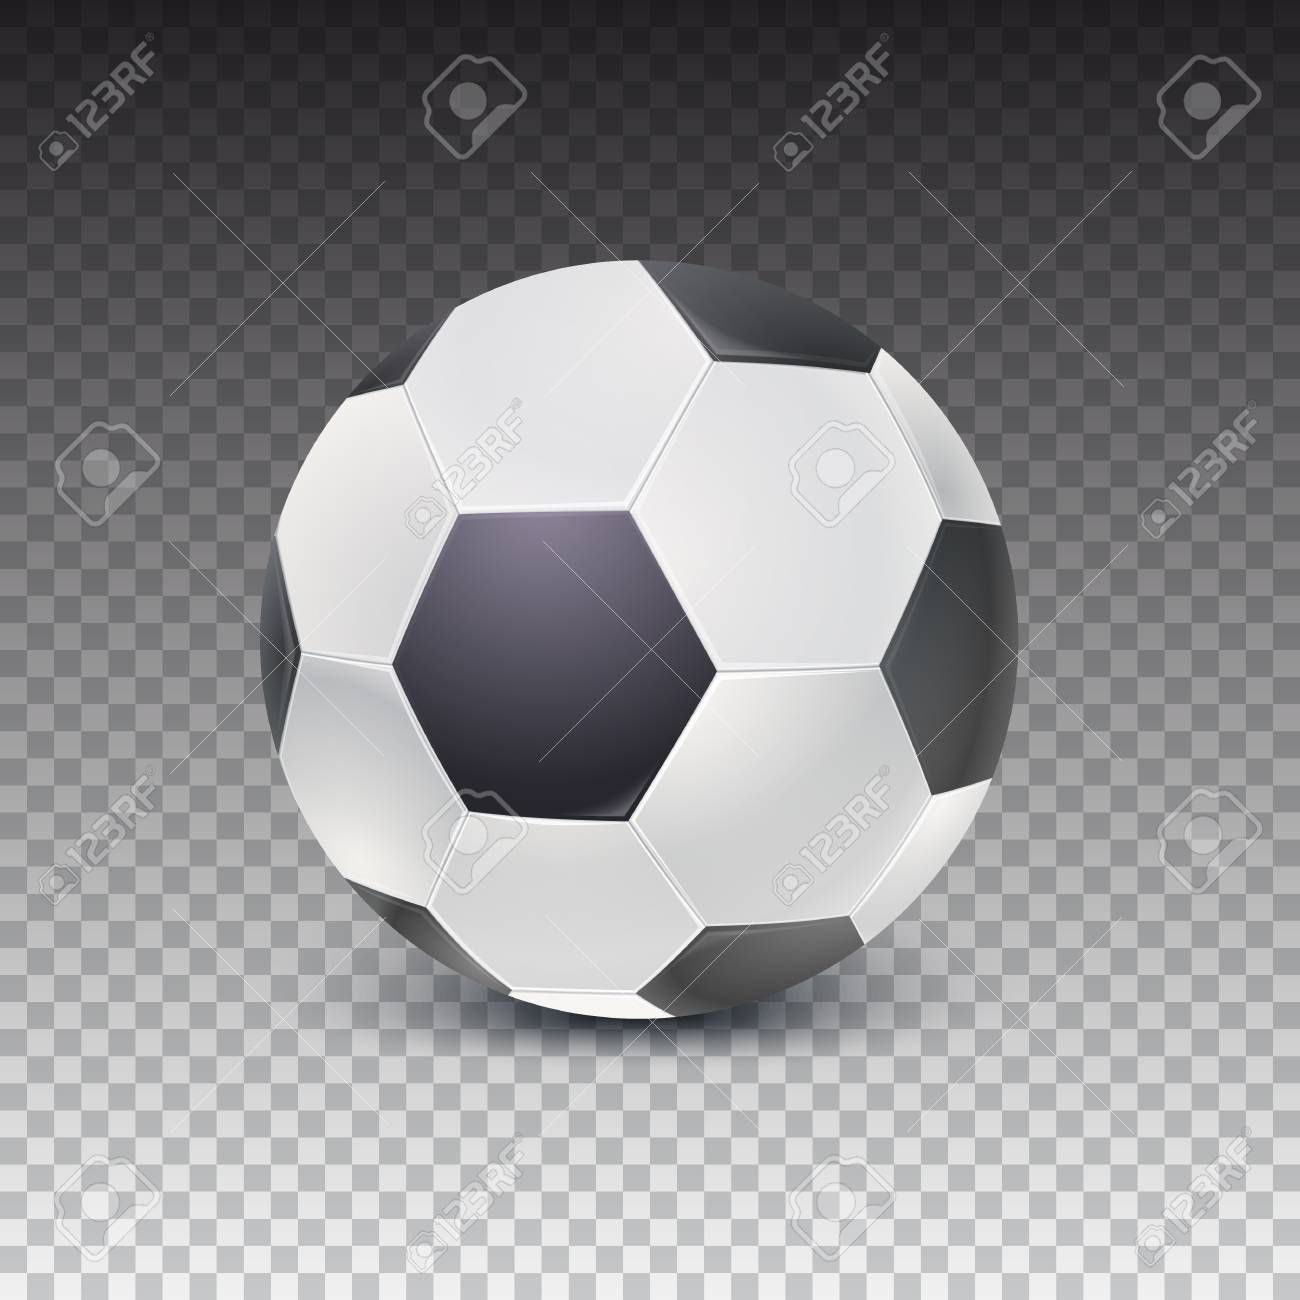 Realistic Soccer Ball With Shadow Isolated On Transparent Background Detailed Icon Of Ball For Game In Classic Football 3d Illustra In 2020 Soccer Ball Soccer Shadow